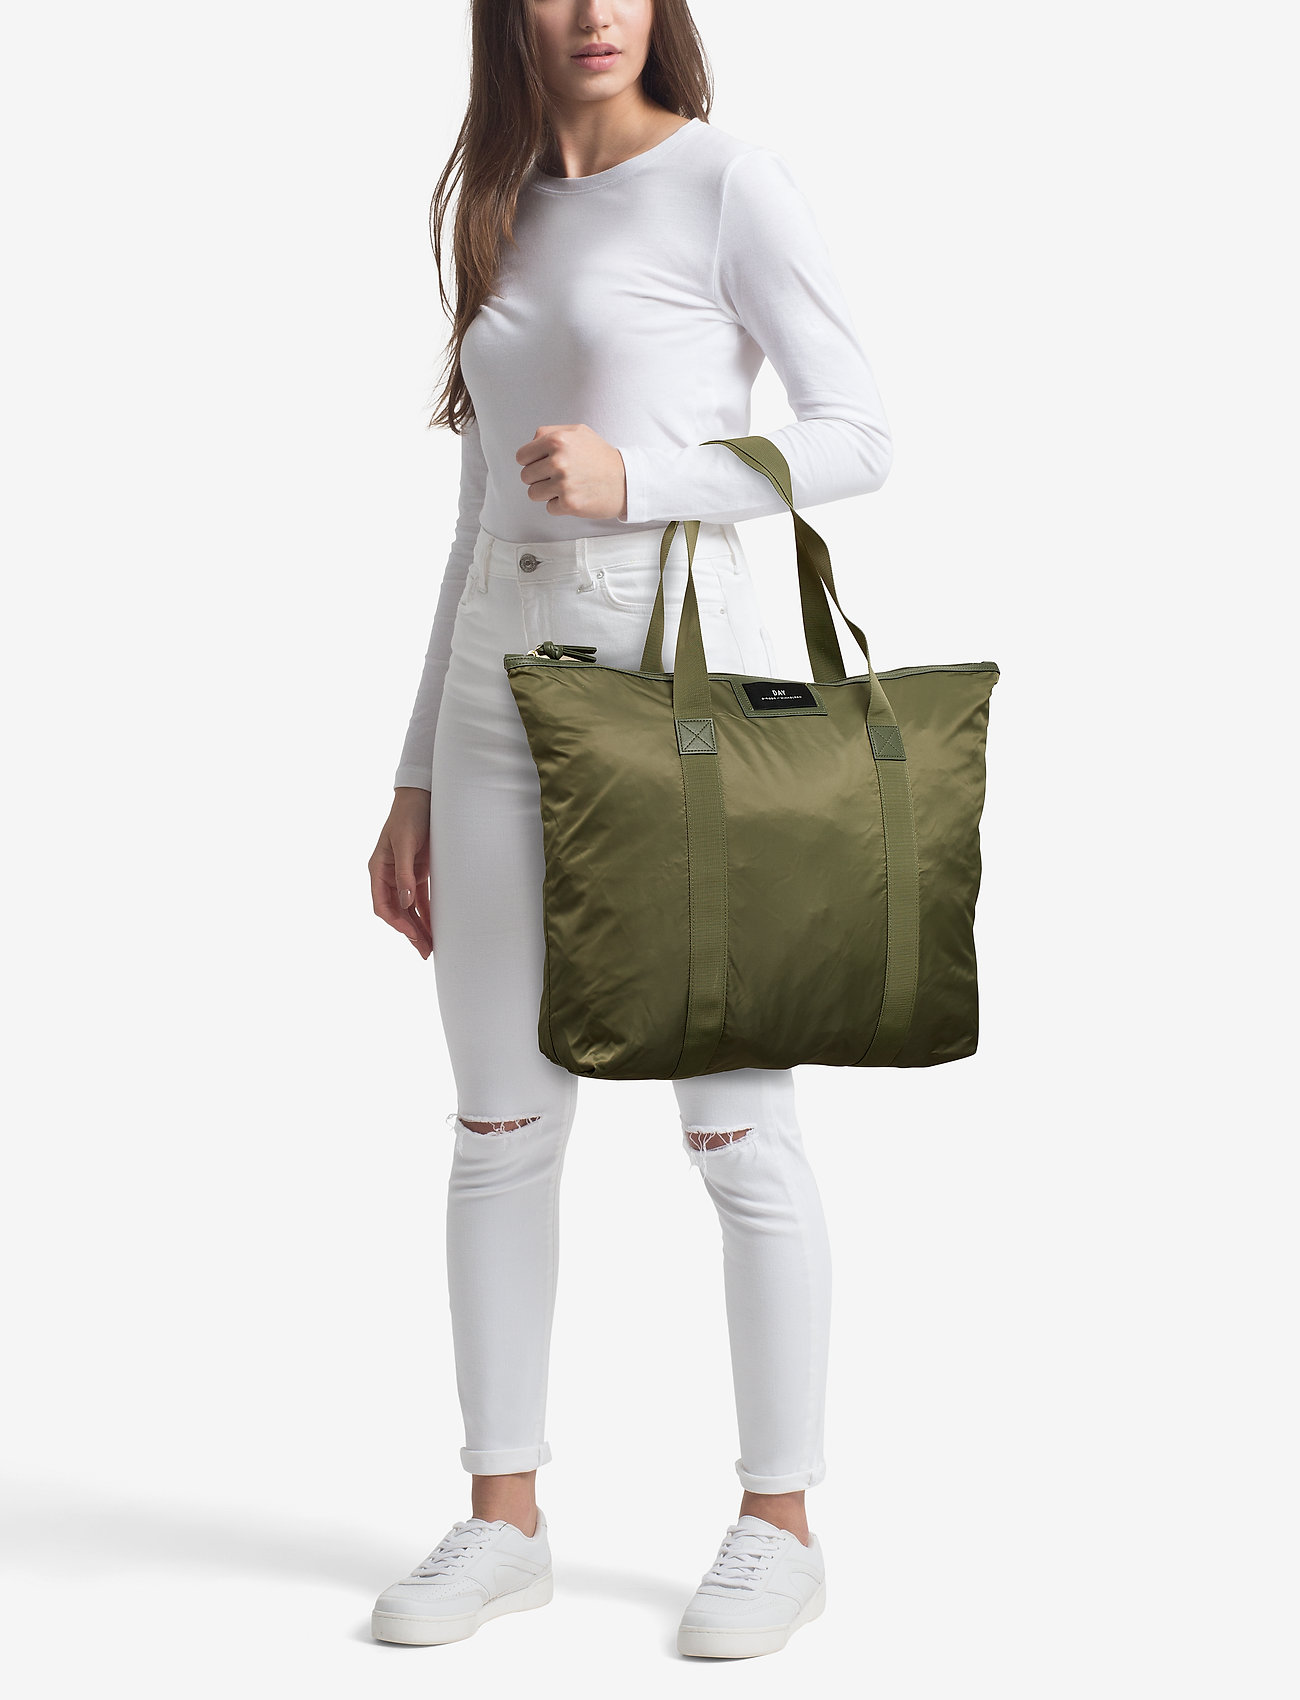 DAY et Day Gweneth Tone Bag - SOLDIER